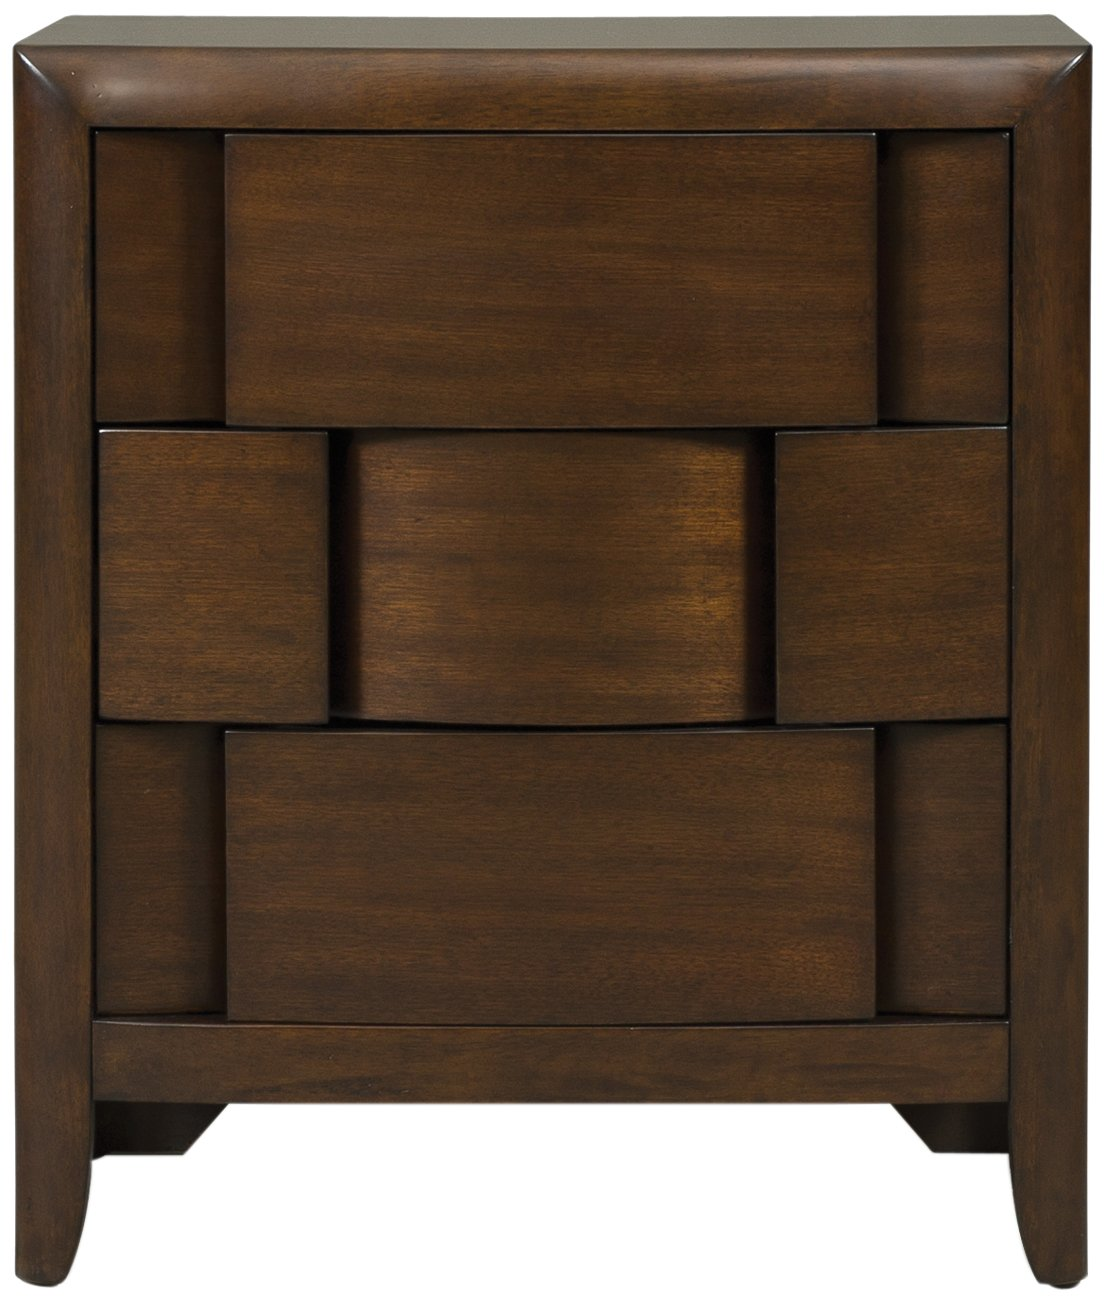 Magnussen Twilight Y1876-01 Wood 3-Drawer Nightstand by Magnussen Home